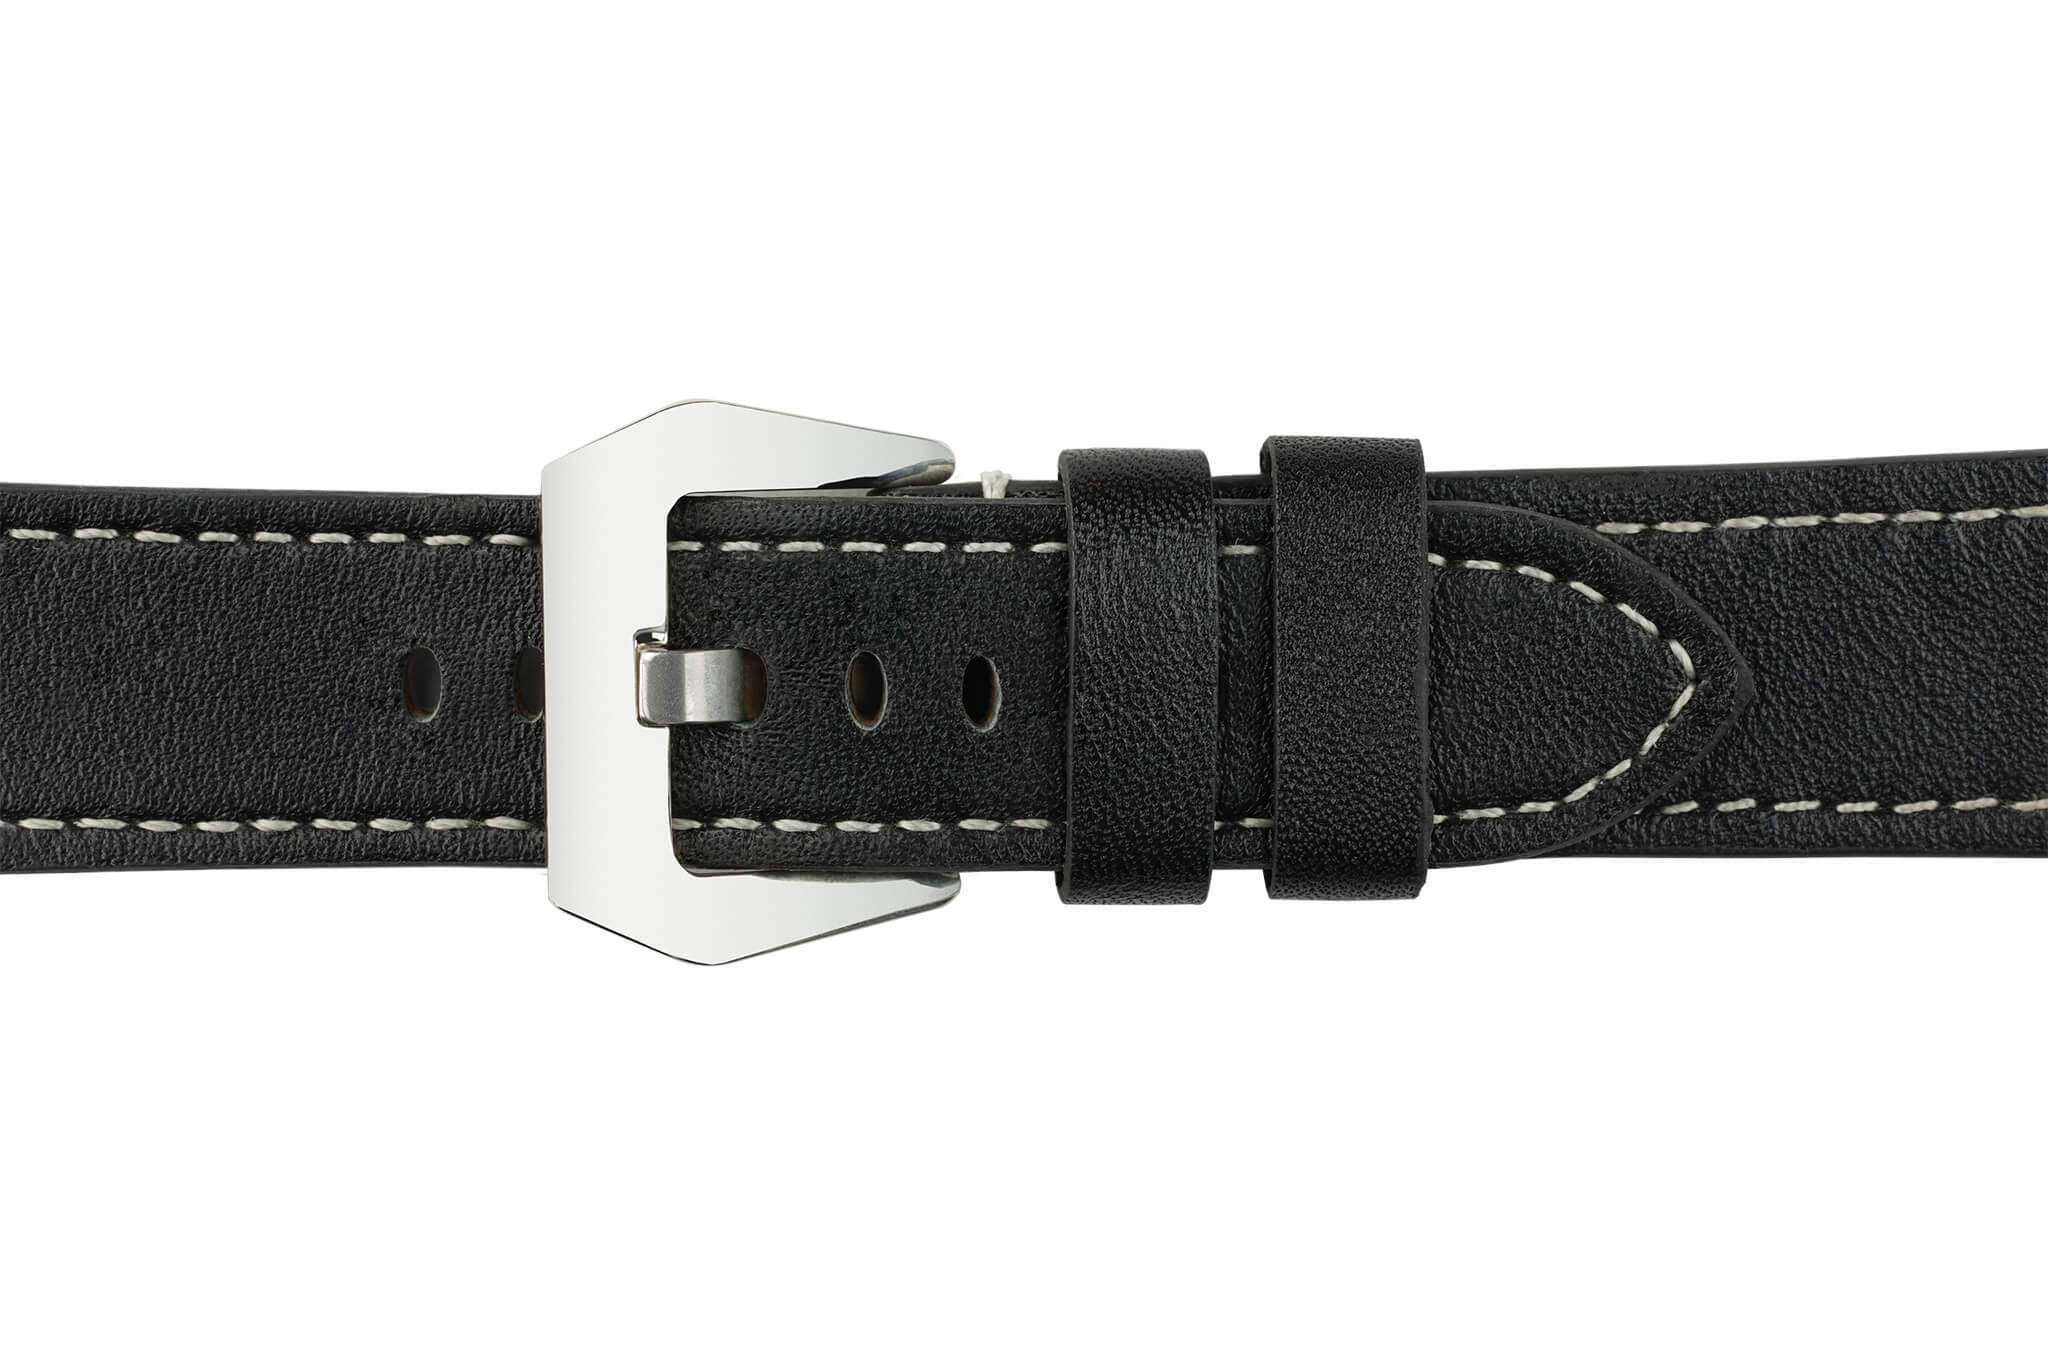 Watch Straps - 22mm Black Leather Watch Strap